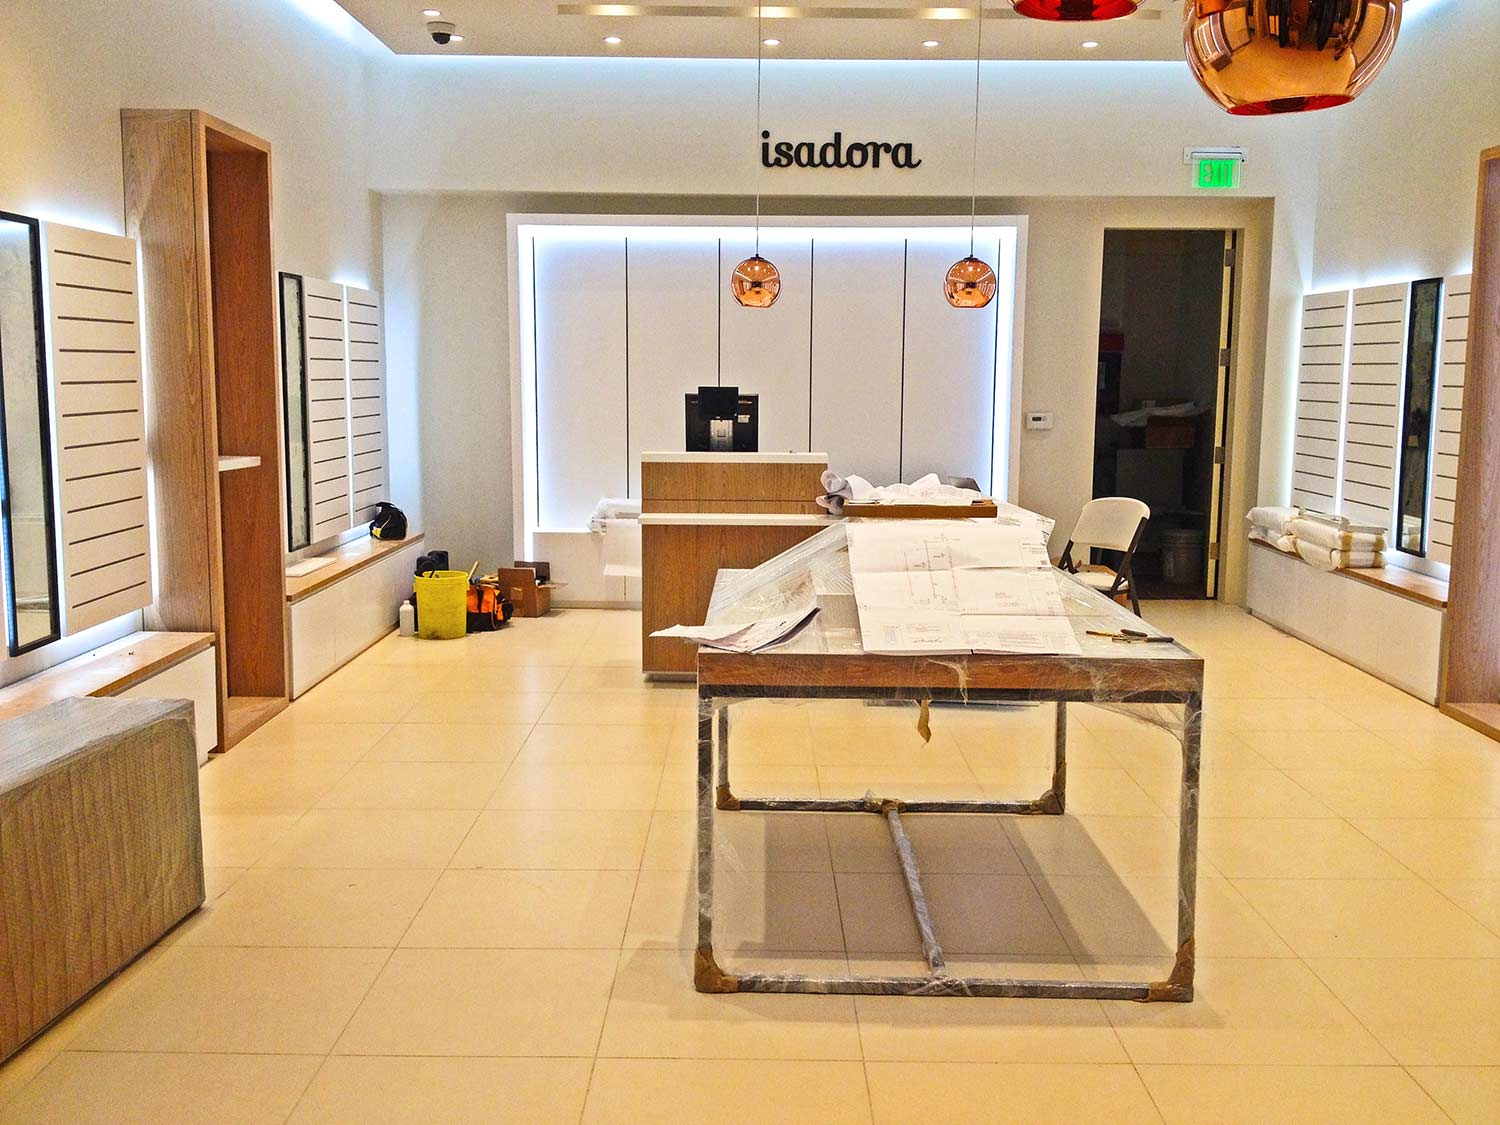 Plans of construction and design details for Isadora store